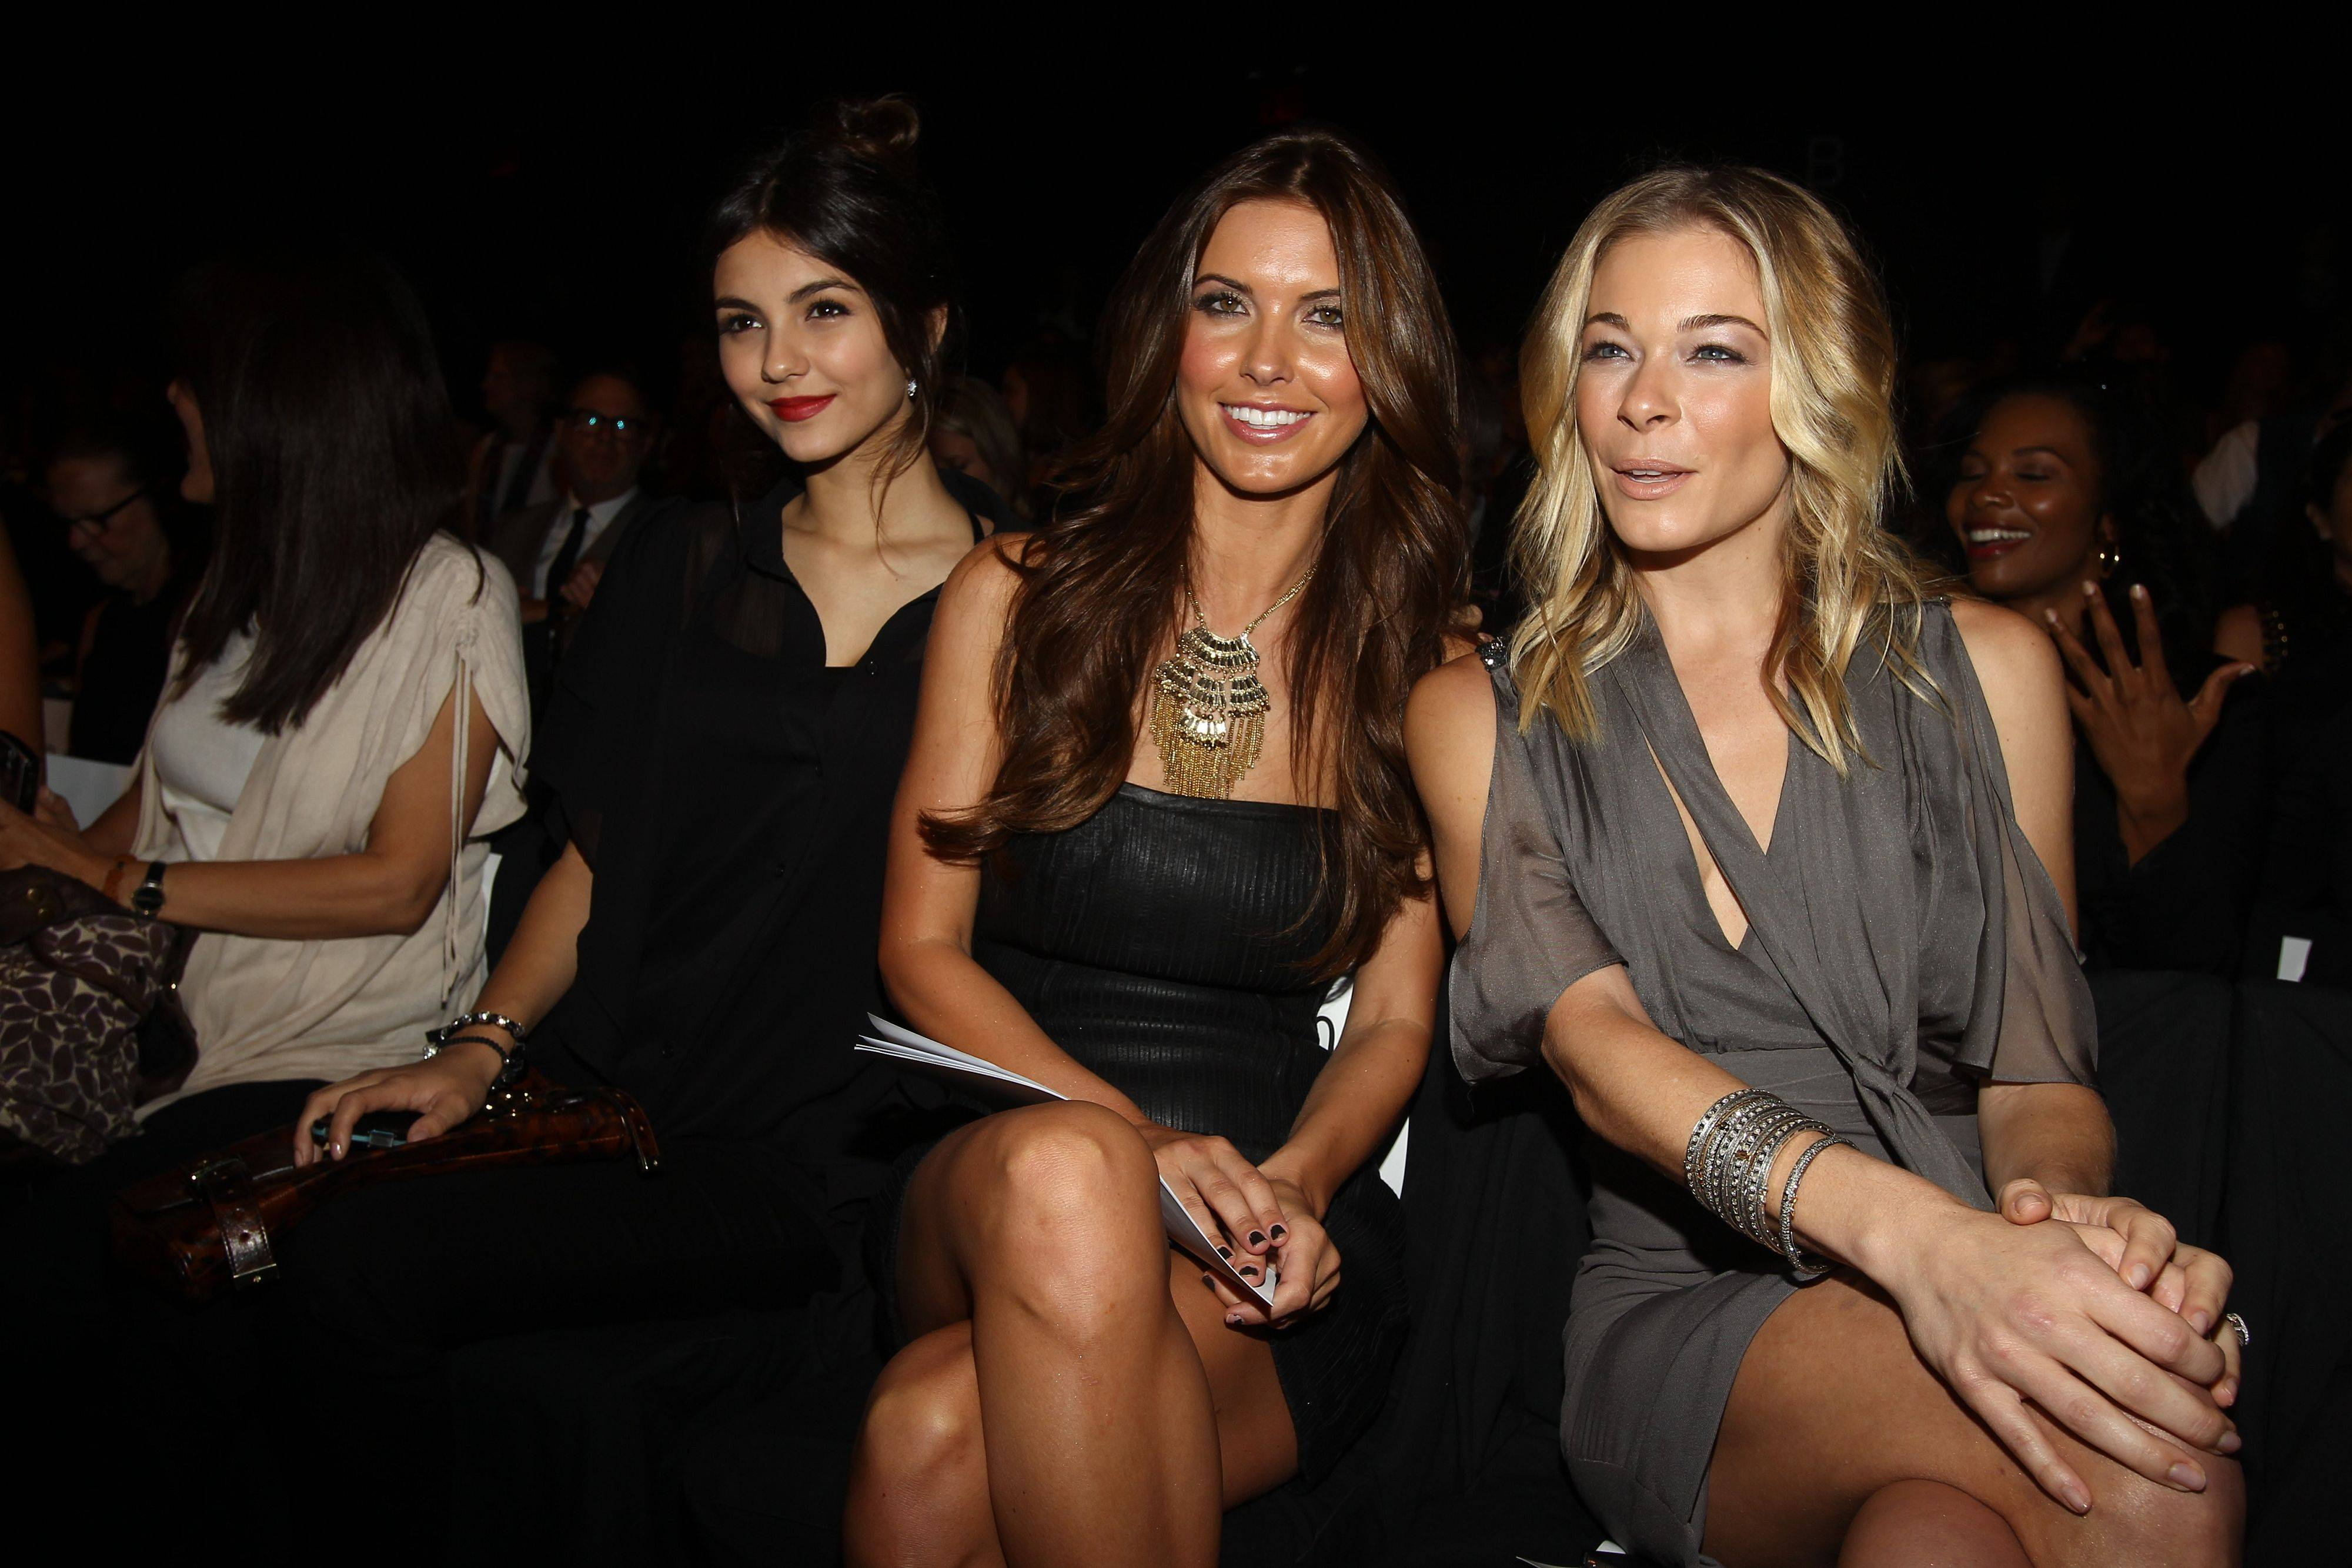 Actress Victoria Justice, left, TV personality Audrina Patridge, center, and singer Leann Rimes attends the Badgley Mischka 2012 Spring collection during Mercedes Benz Fashion Week at Lincoln Center on Tuesday, Sept. 13, 2011.